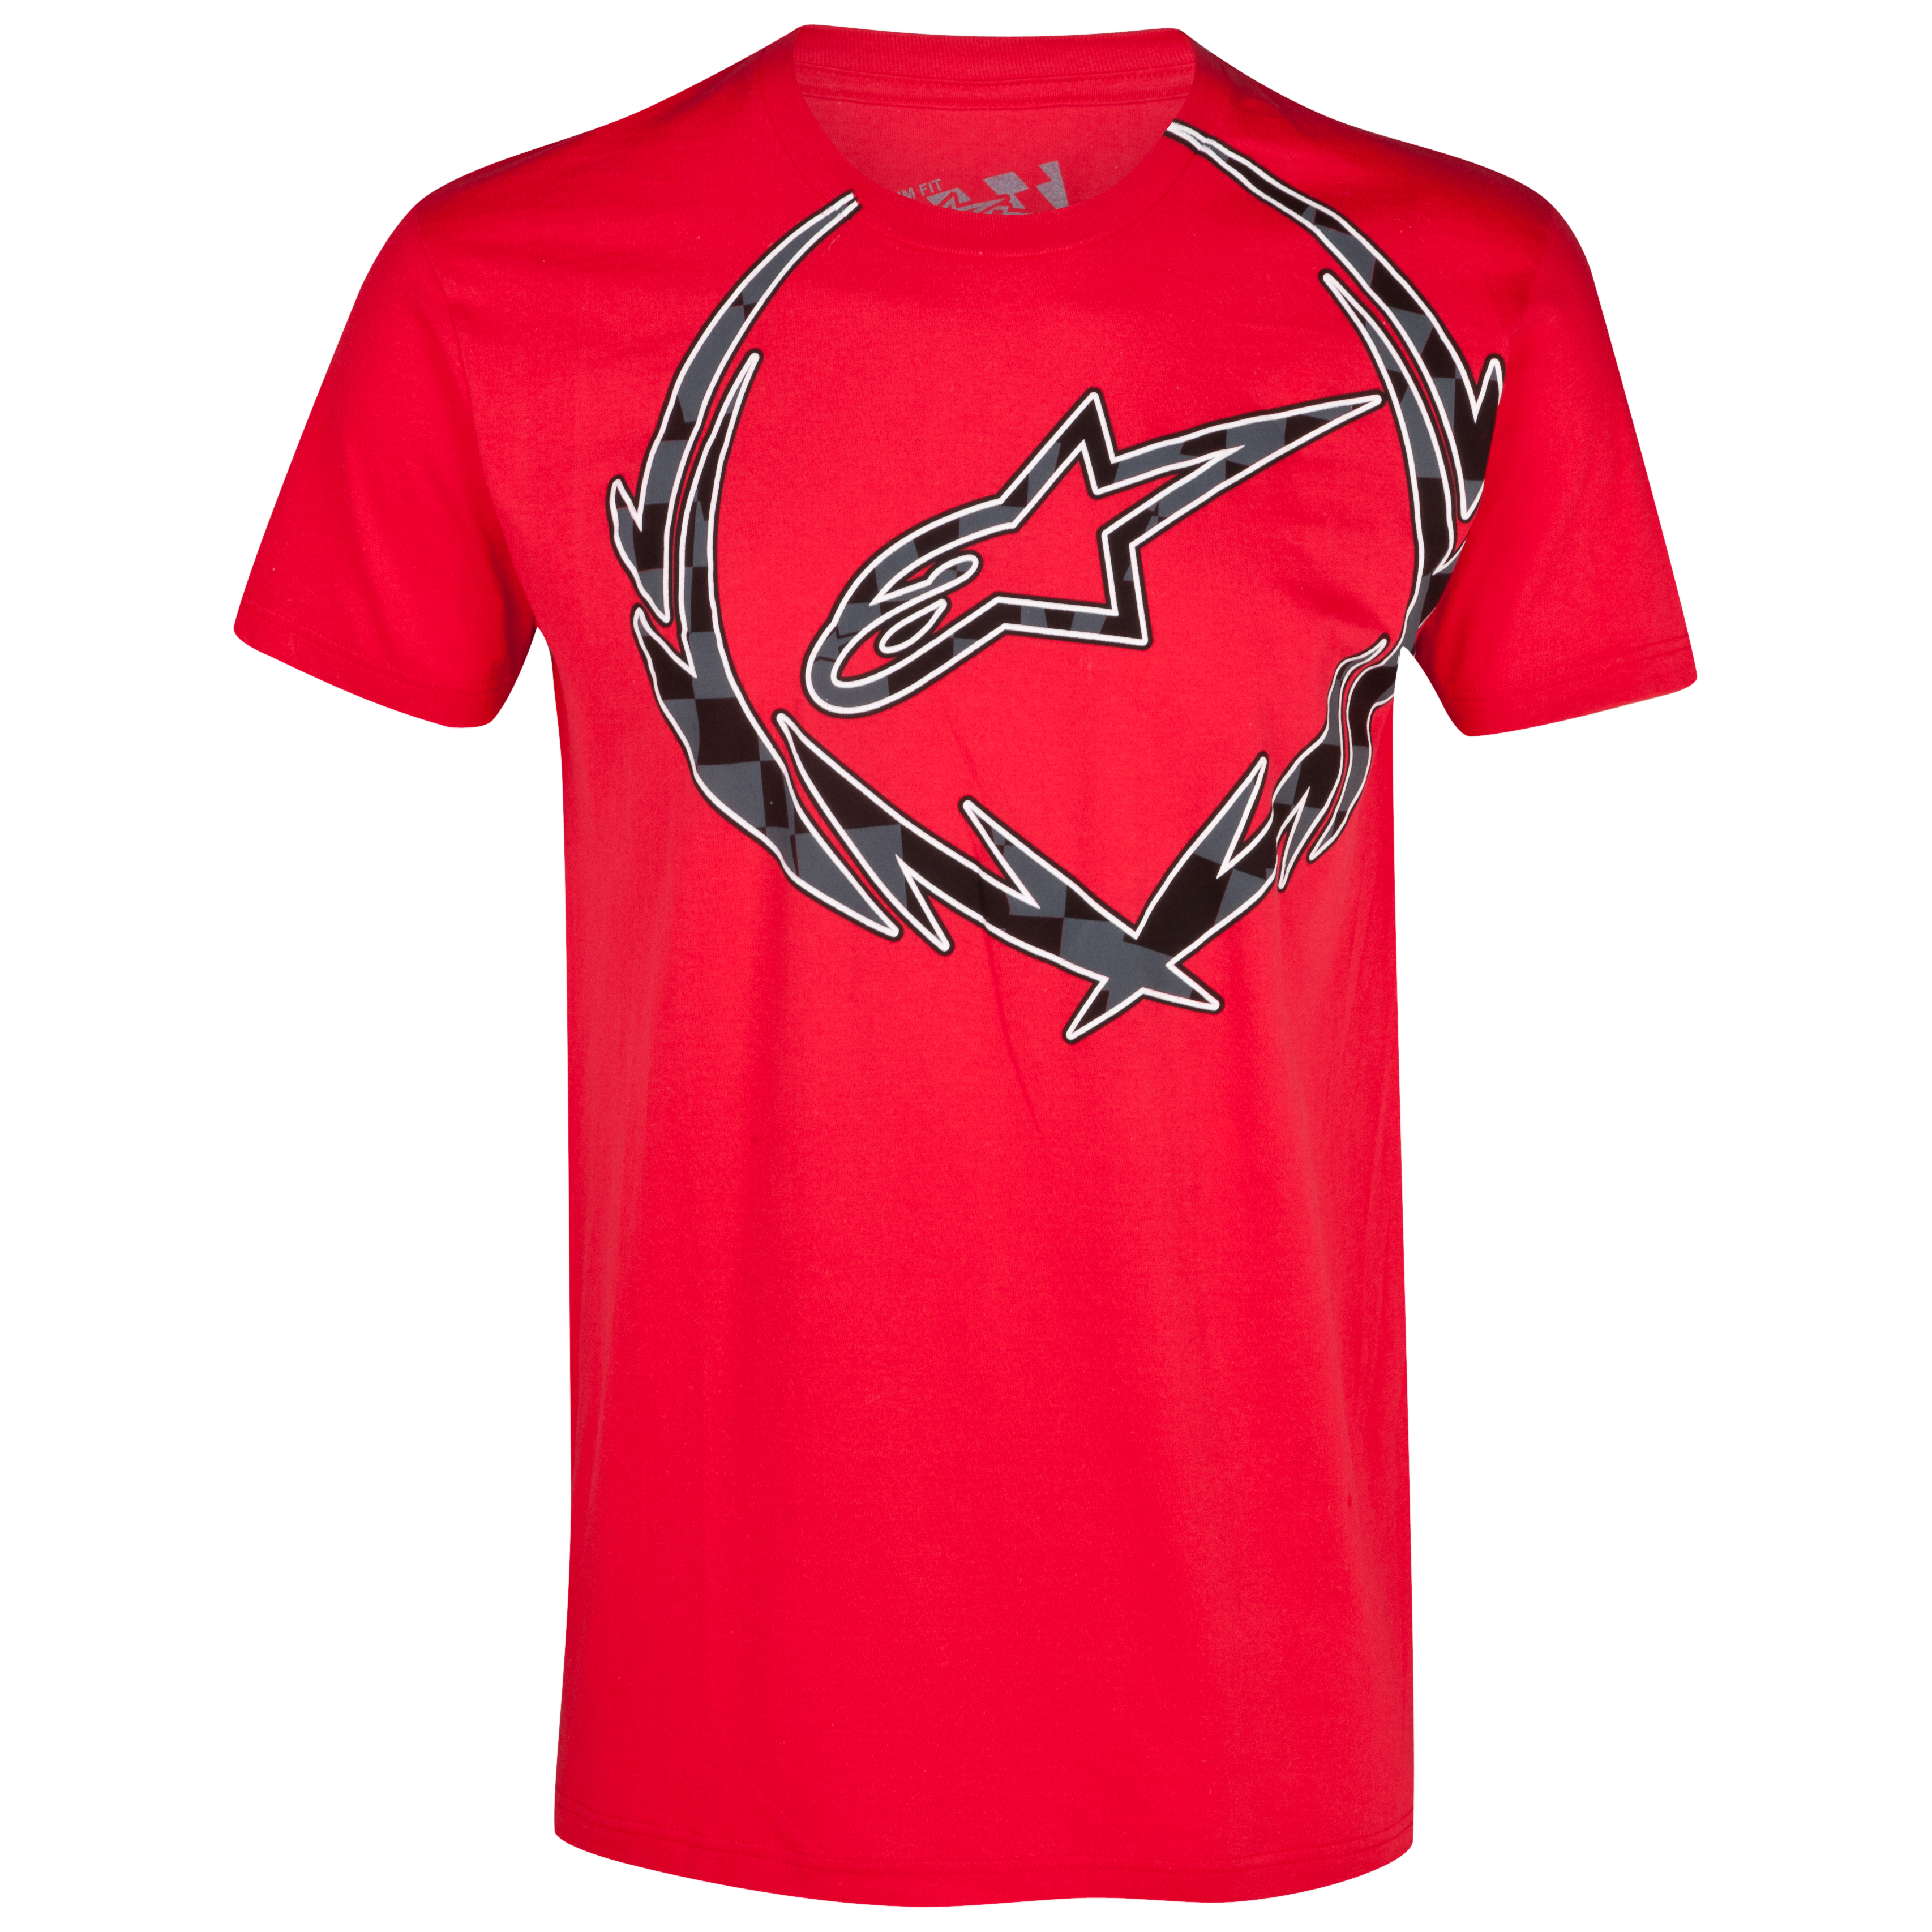 Alpinestars Metal Wreath T-Shirt - Red